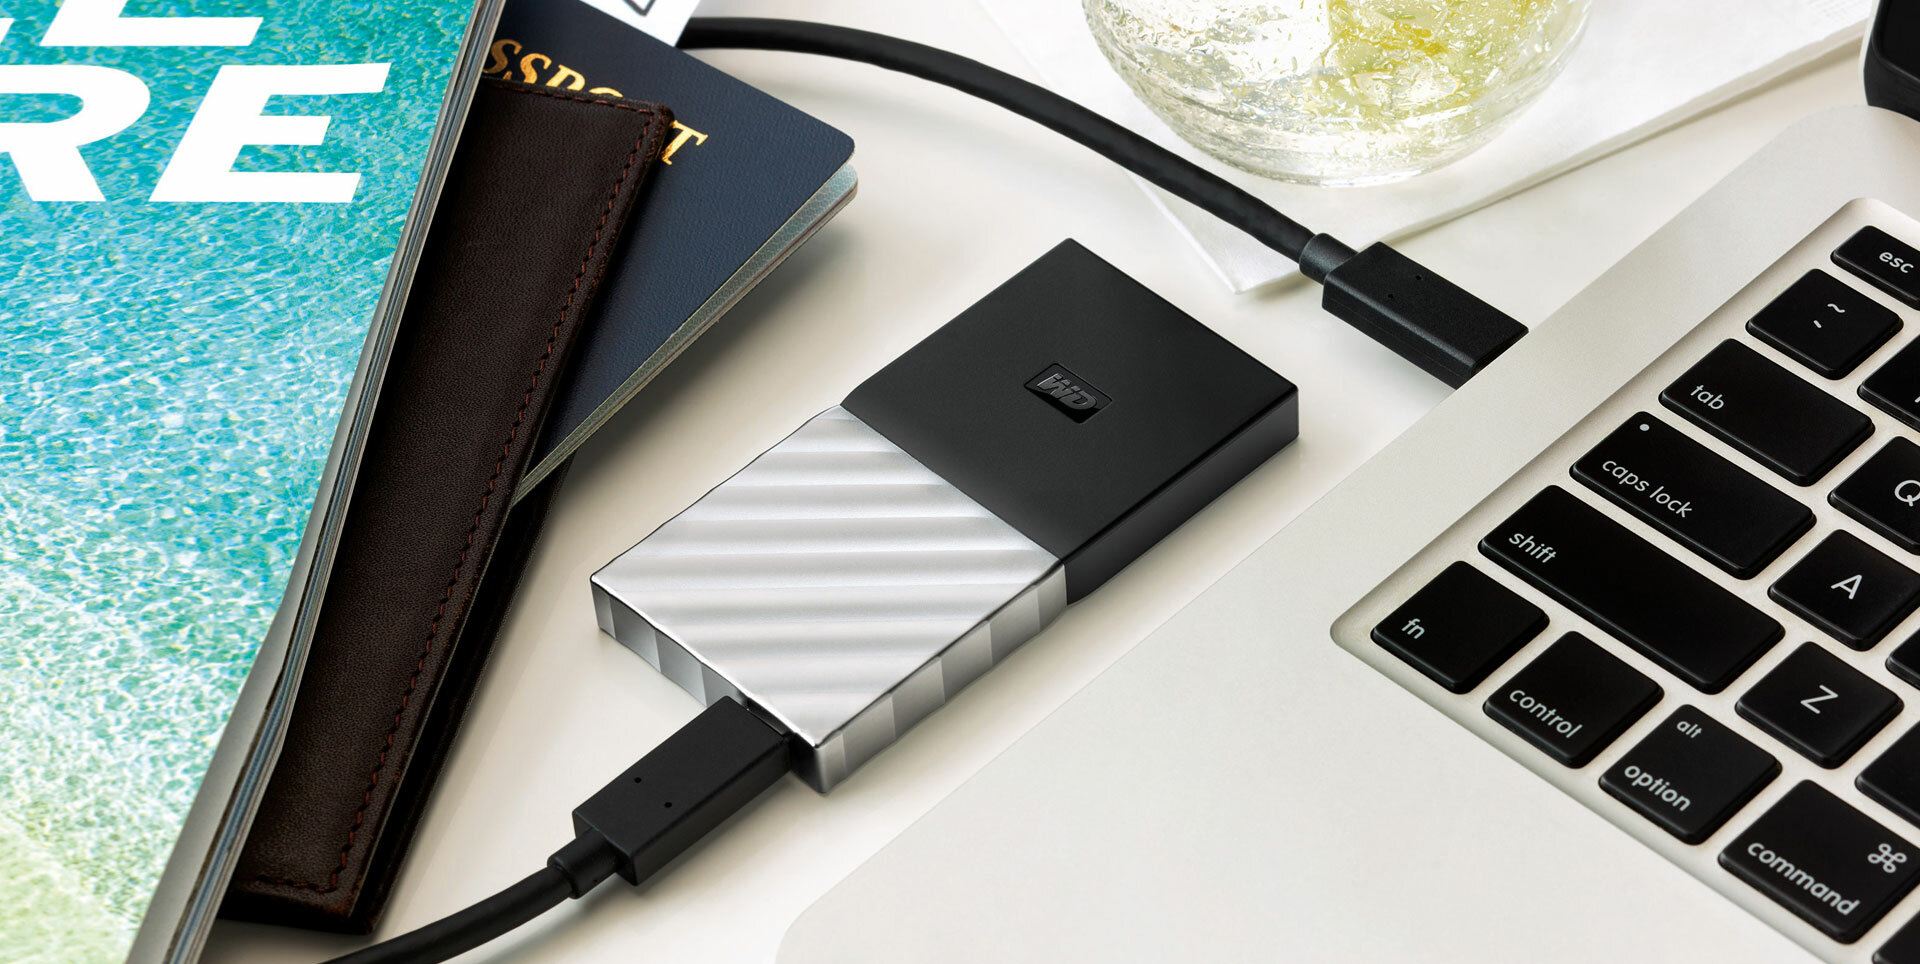 Image result for EASY TO USE My Passport SSD portable storage is ready to use out of the box. Whether you're backing up word docs or saving large media files, just plug it in and start transferring right away.